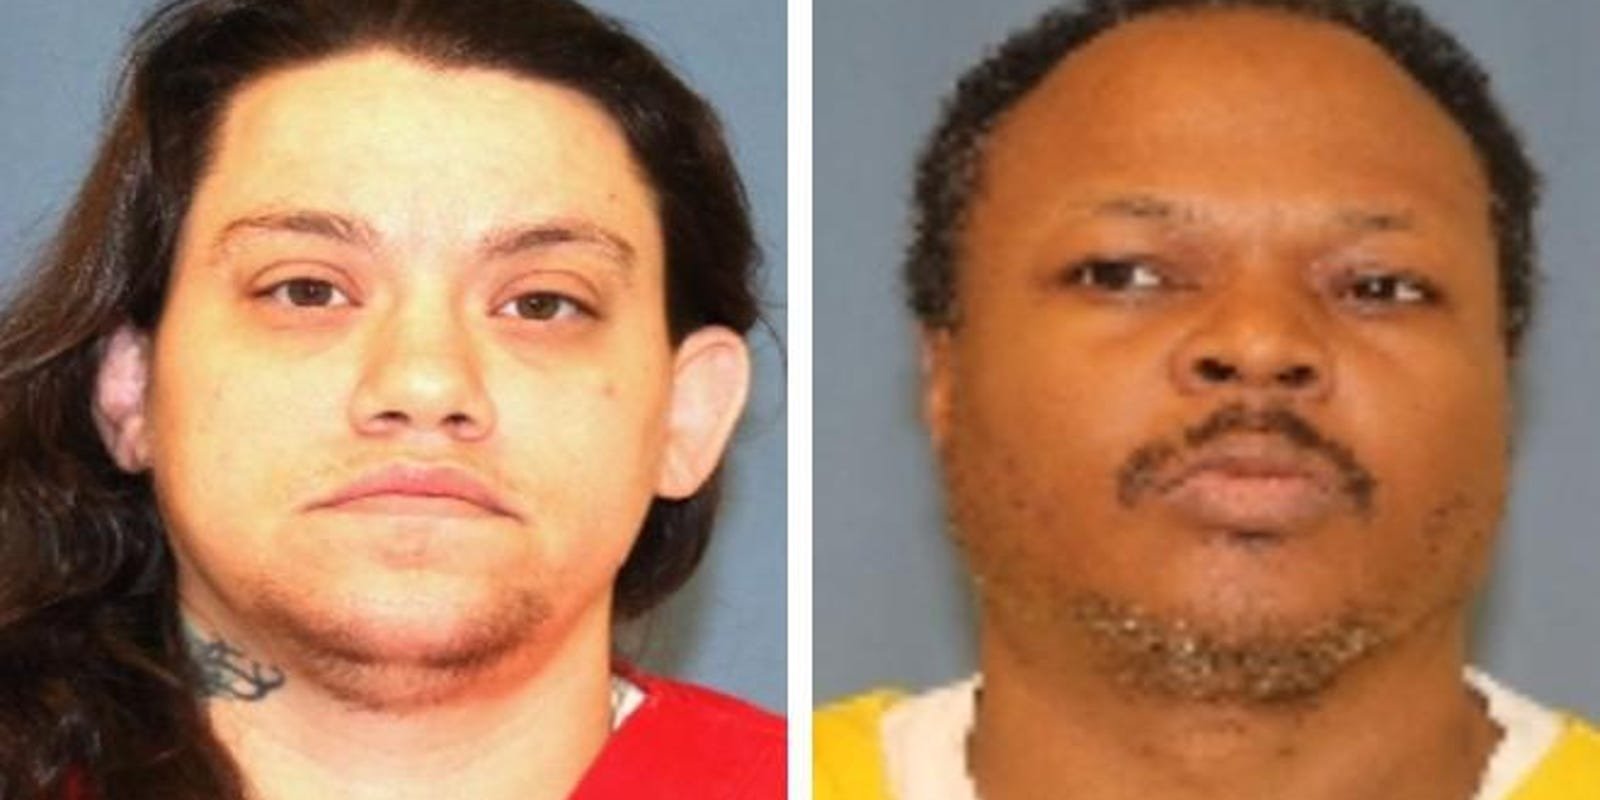 Allene Simmons west allis couple guilty of kidnapping, torture, murder in